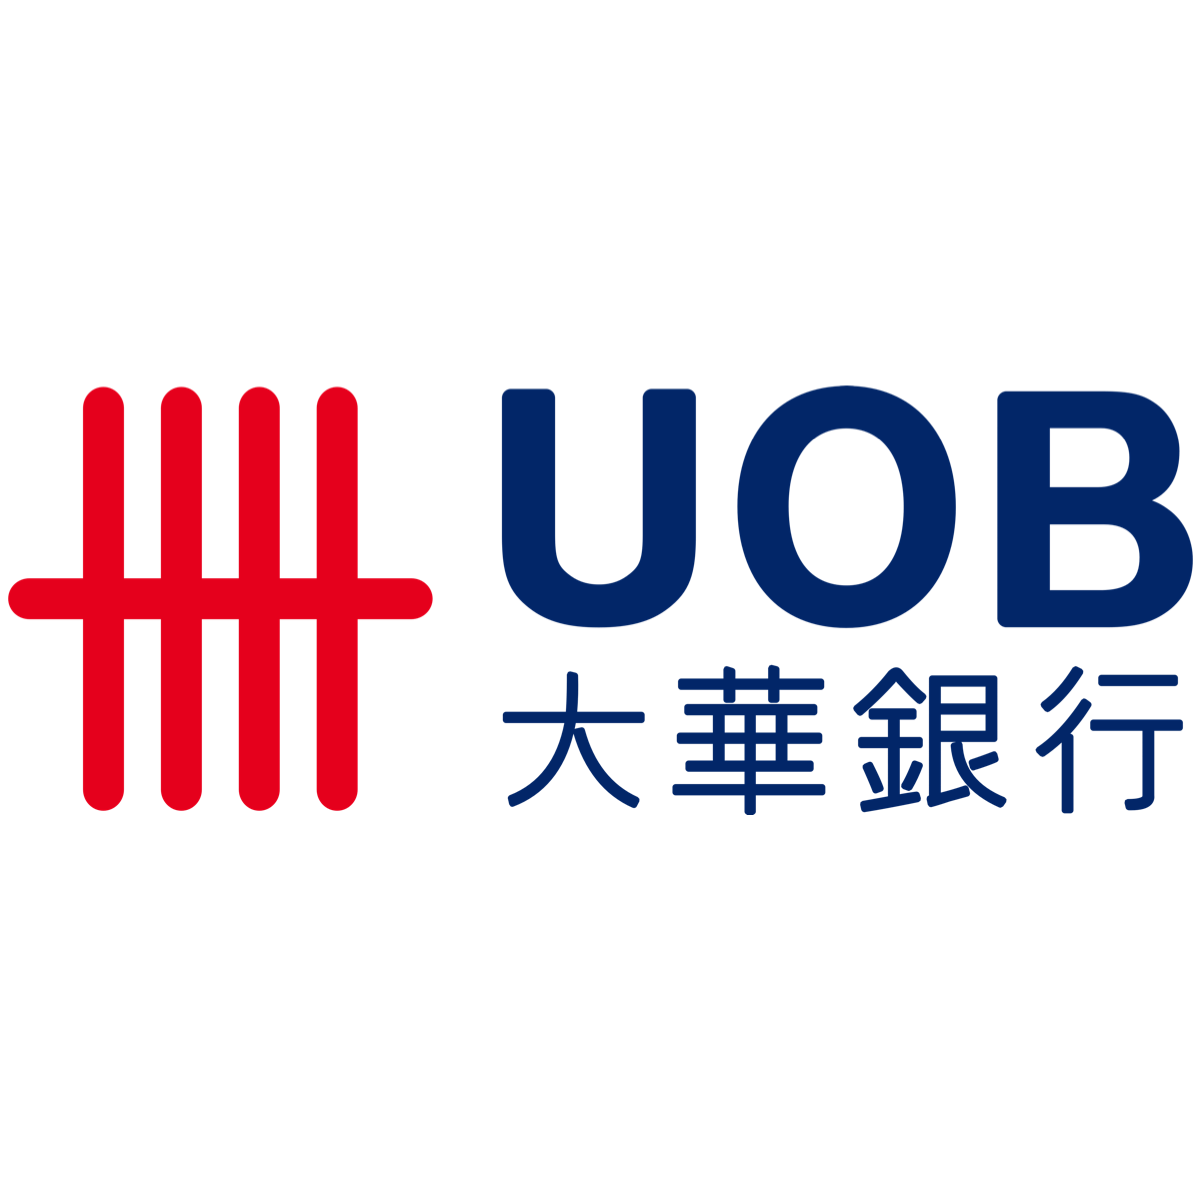 UOB - RHB Invest 2017-05-02: On Track For An Earnings Improvement